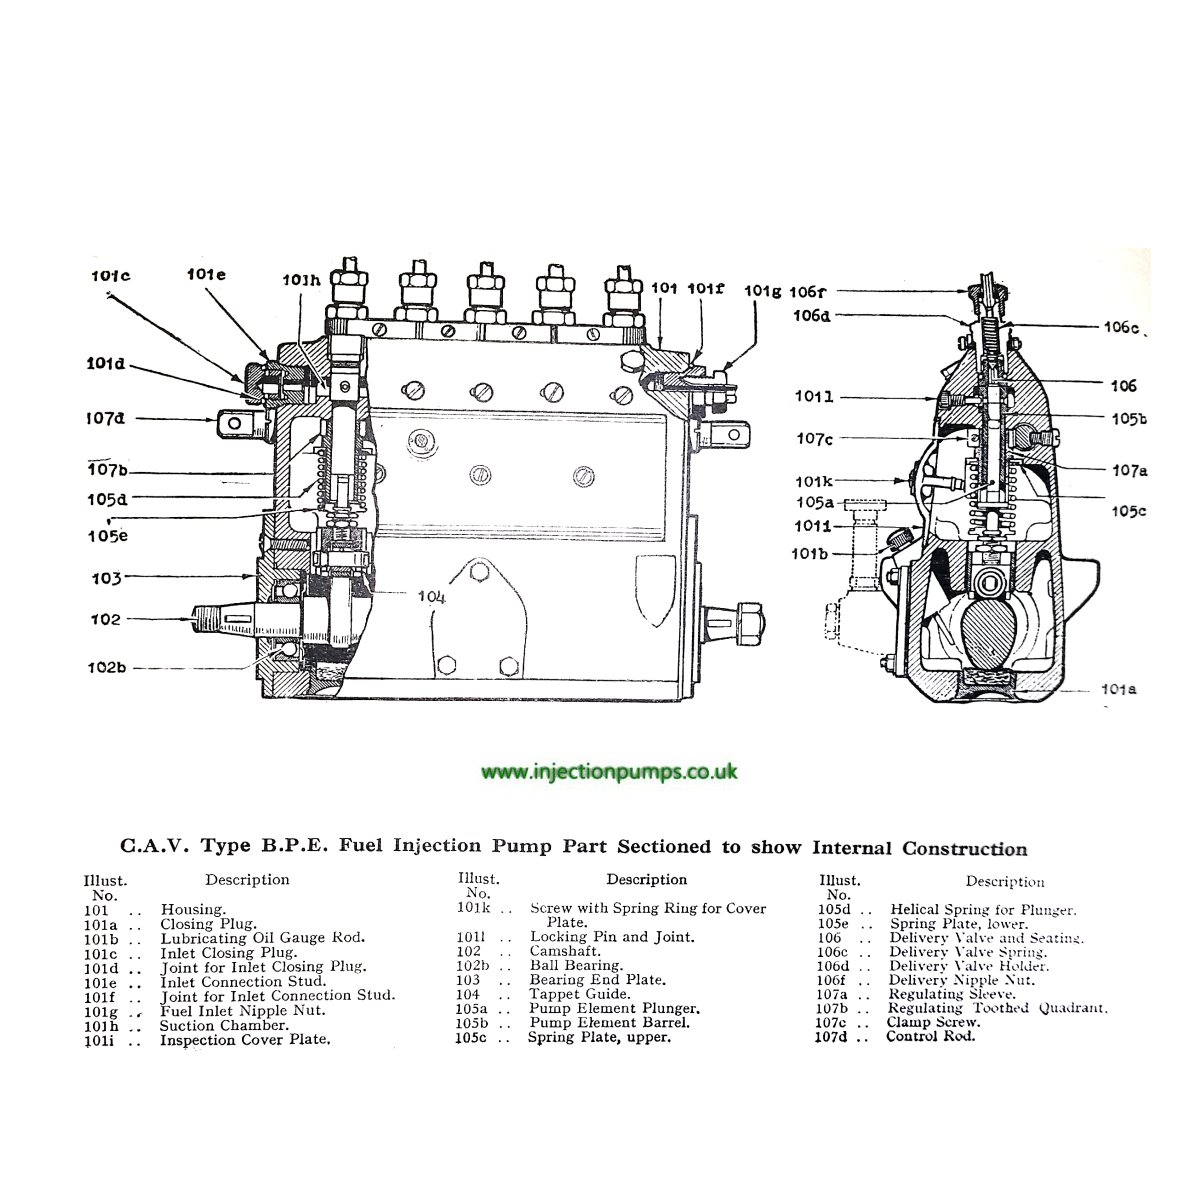 Stanadyne Fuel Injection Pump Diagram Com